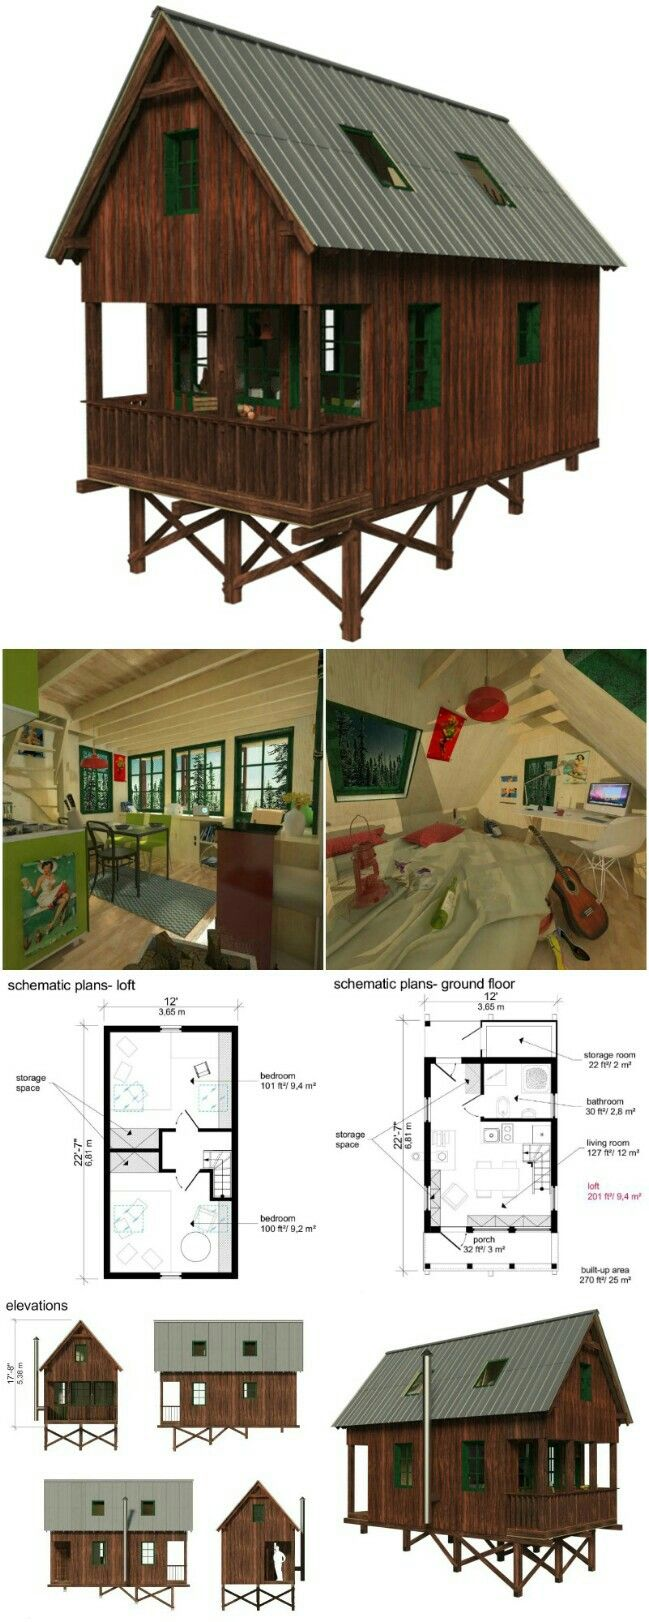 Pin By Jane Naus On River Shack Plans Tiny House Plans Tiny House Village Tiny House Cabin